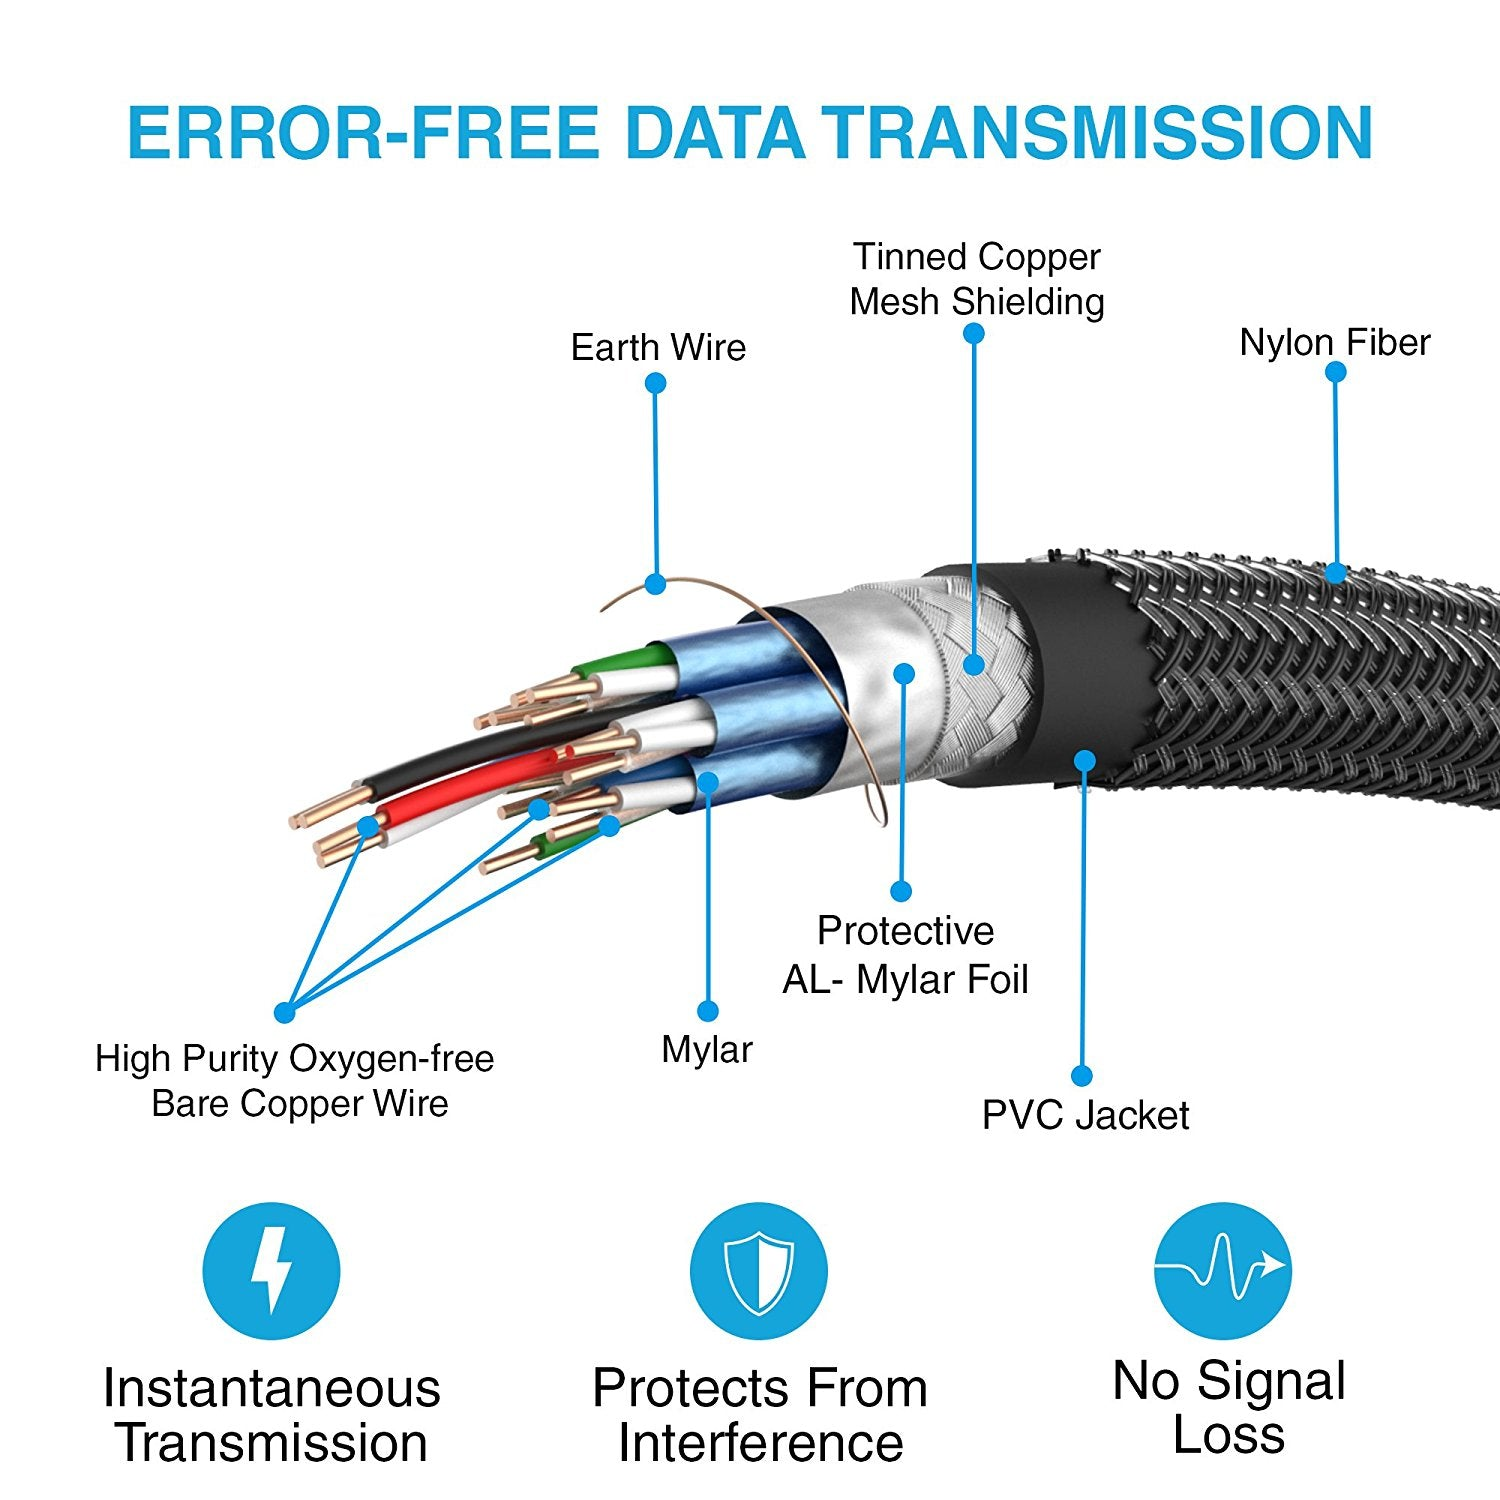 Hdmi Cable Diagram Wiring Diagrams Connector Pinout Knowledge Of The Pinouts 4k Wire Data Schema Usb To